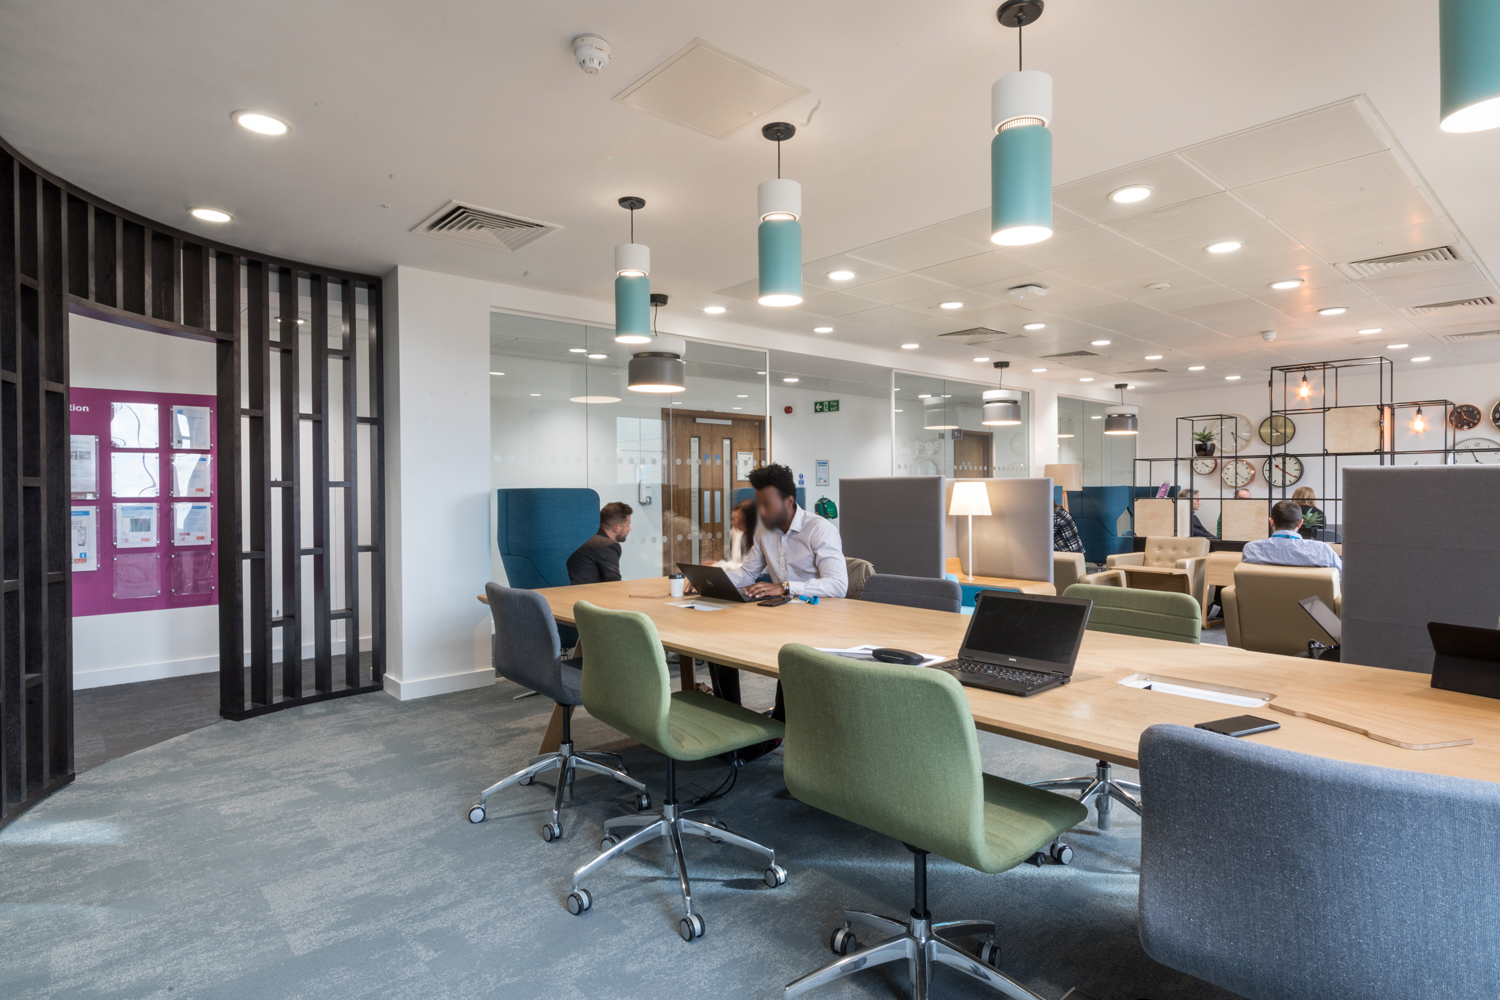 Office interior with green and blue chairs, breakout booths and Spacestor palisades grid